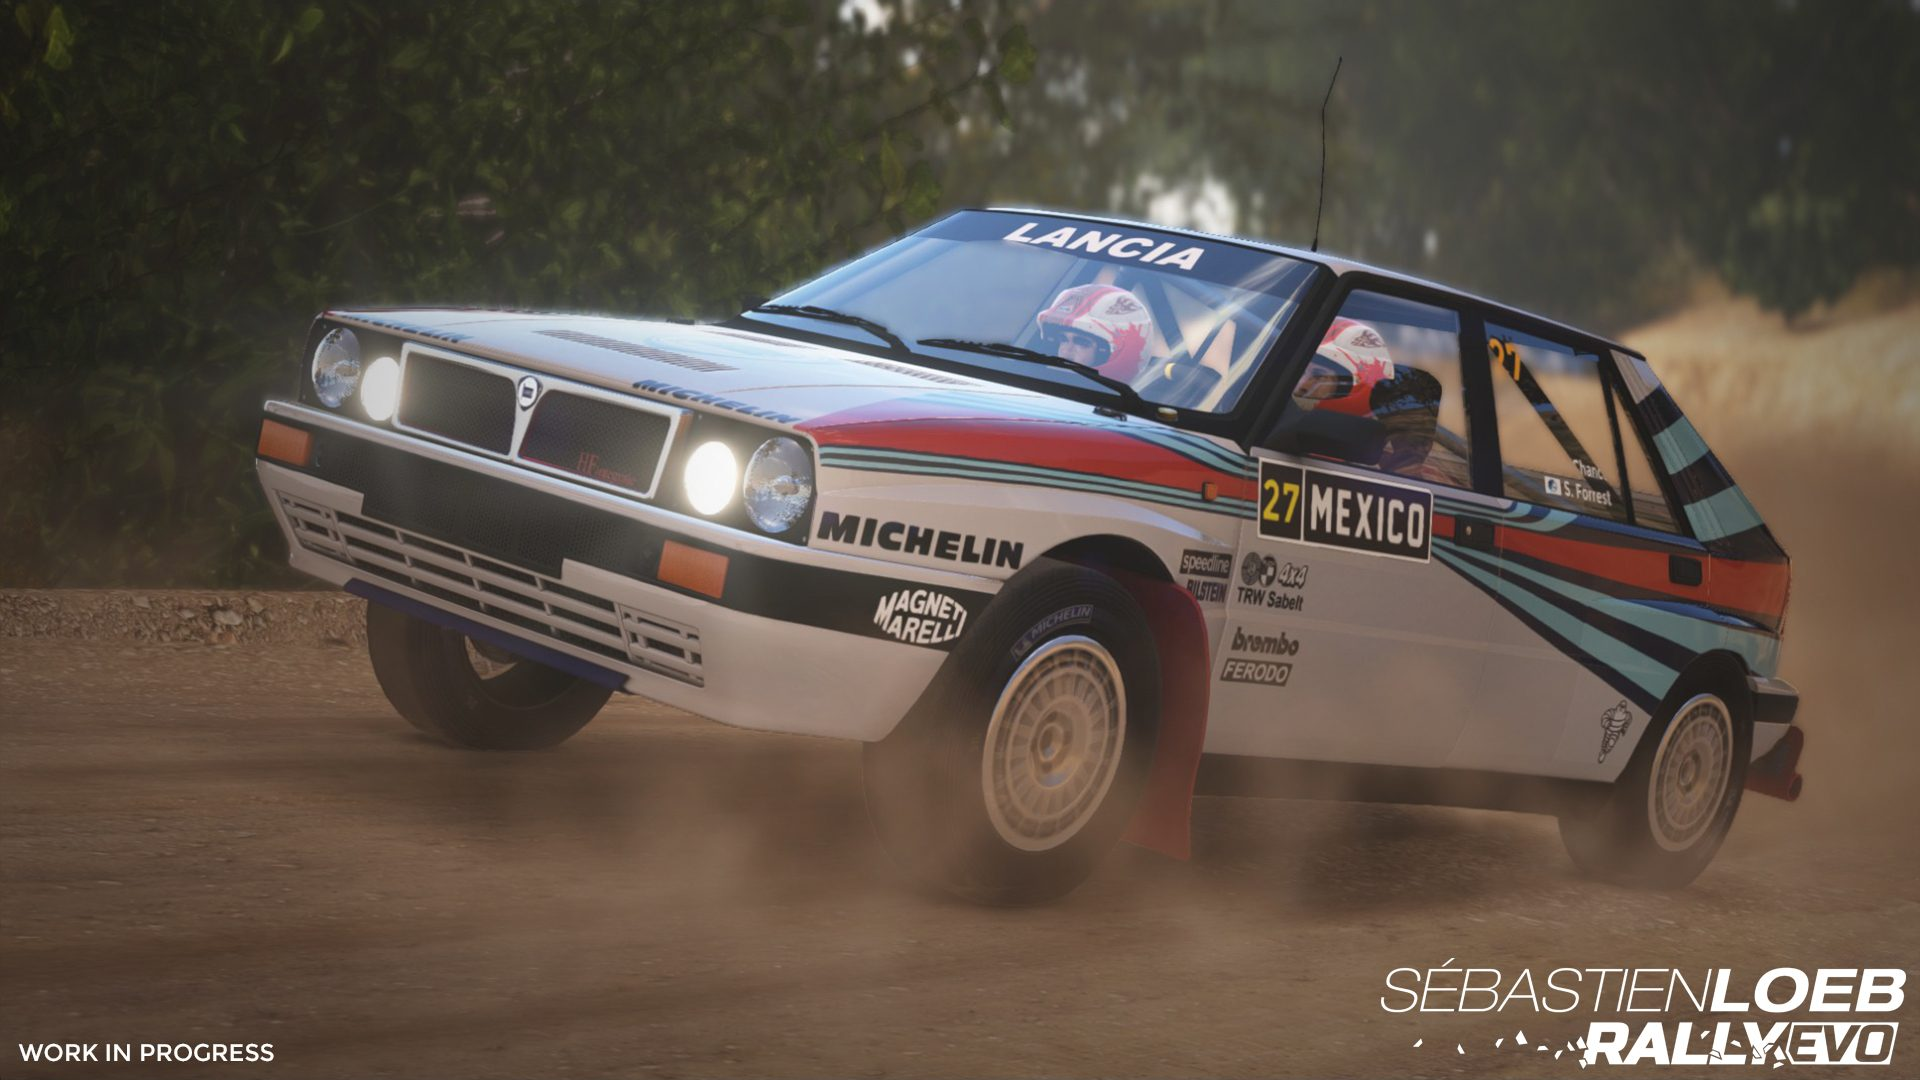 s bastien loeb rally evo now available in europe on ps4. Black Bedroom Furniture Sets. Home Design Ideas